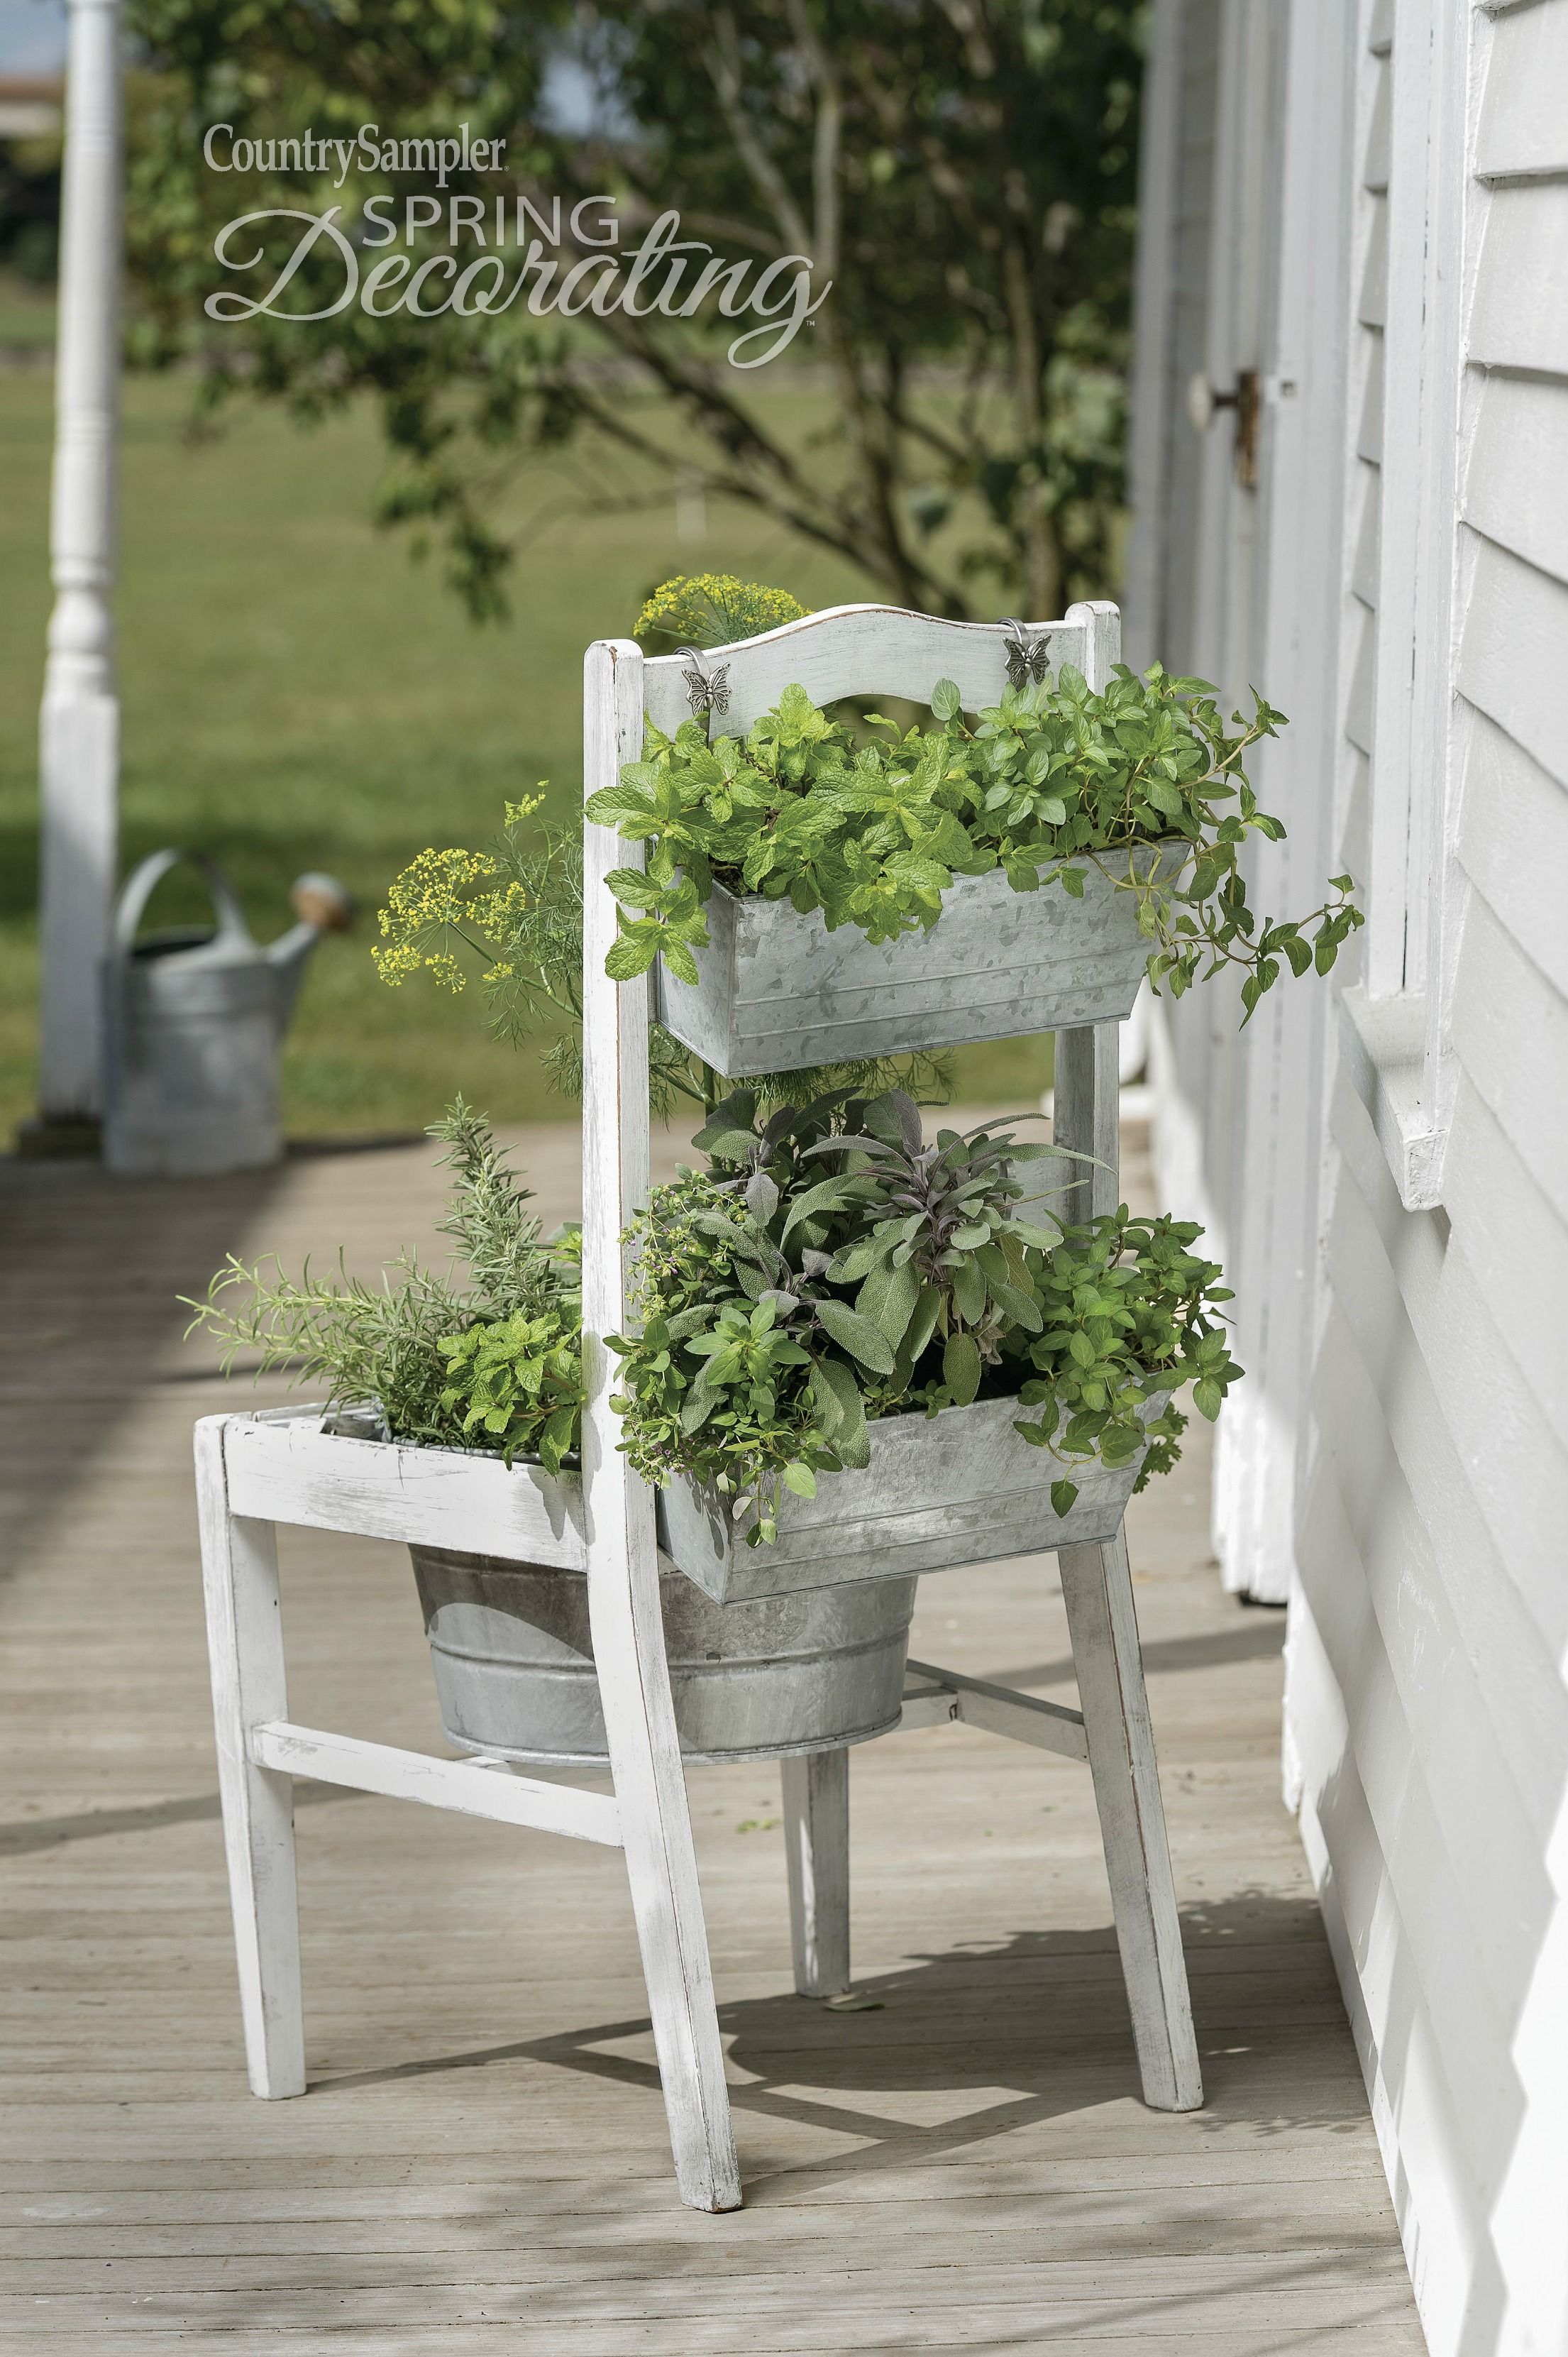 Reinvent An Old Chair As A Stand Up Herb Planter With The Use Of A Galvanized Tub And Planters Herb Planters Rustic Planters Garden Chairs Design